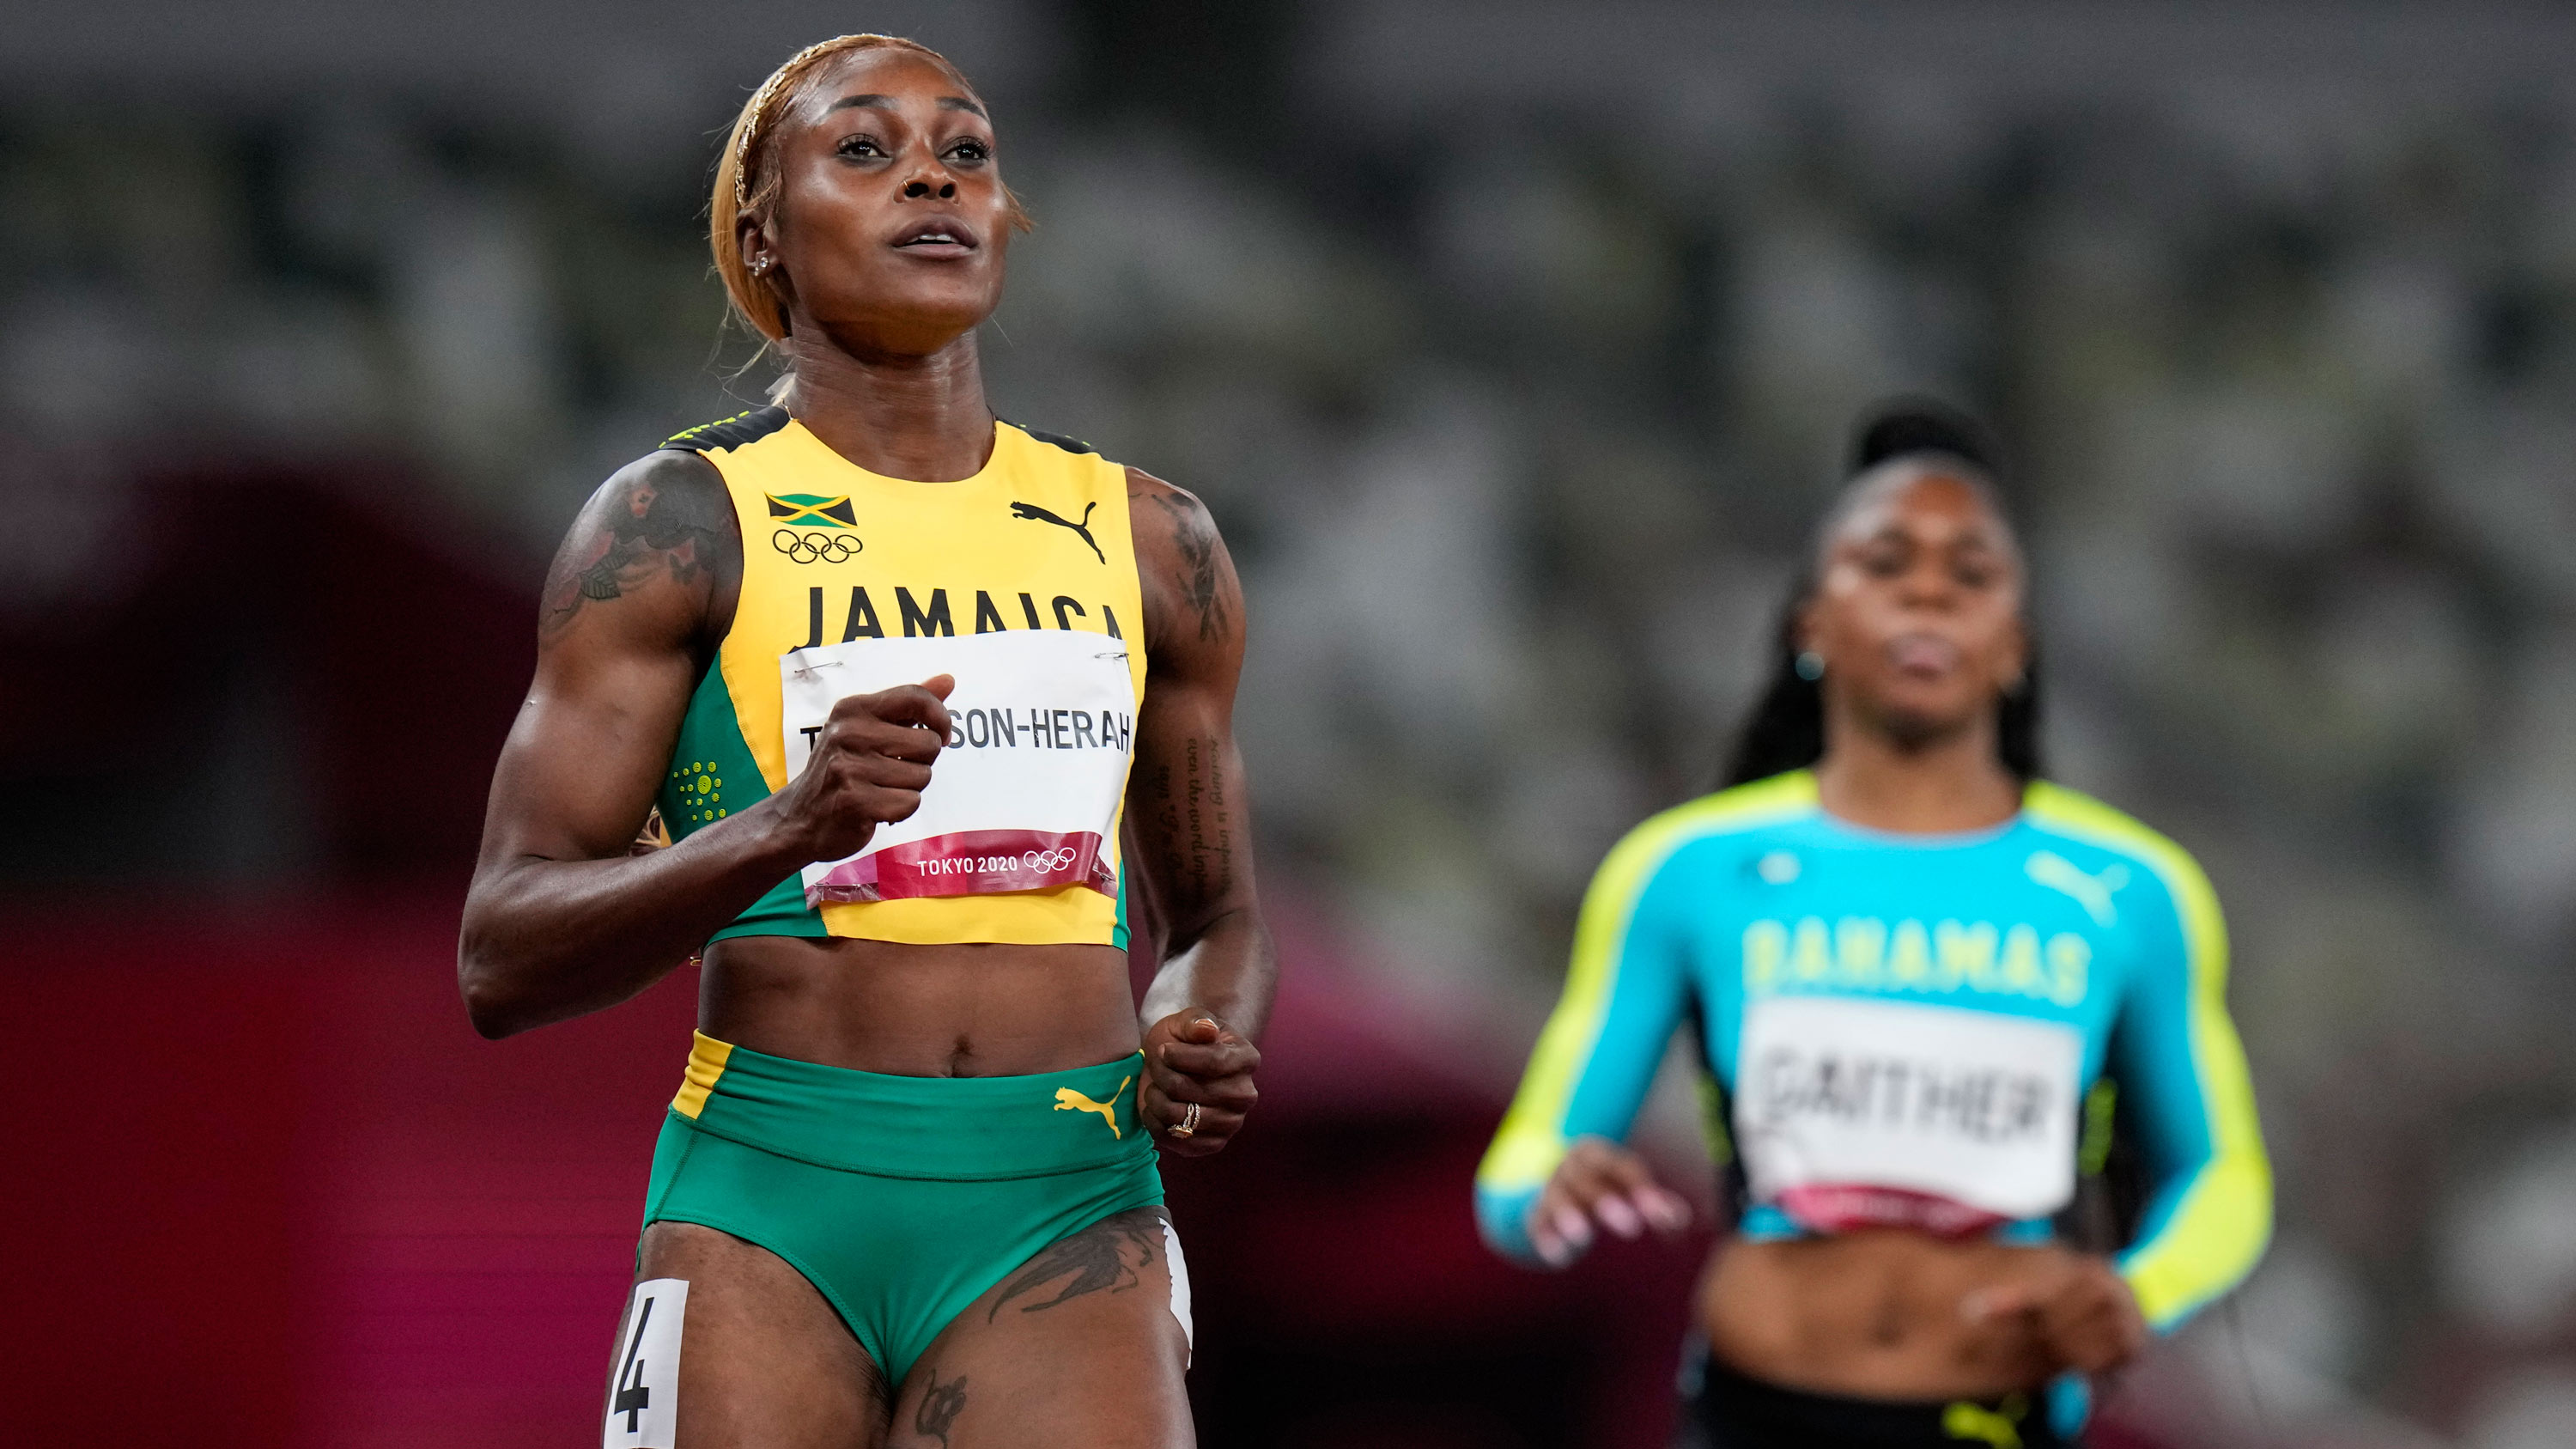 Defending Olympic 100m champion Elaine Thompson-Herah of Jamaica wins her 100m semifinal on July 31.